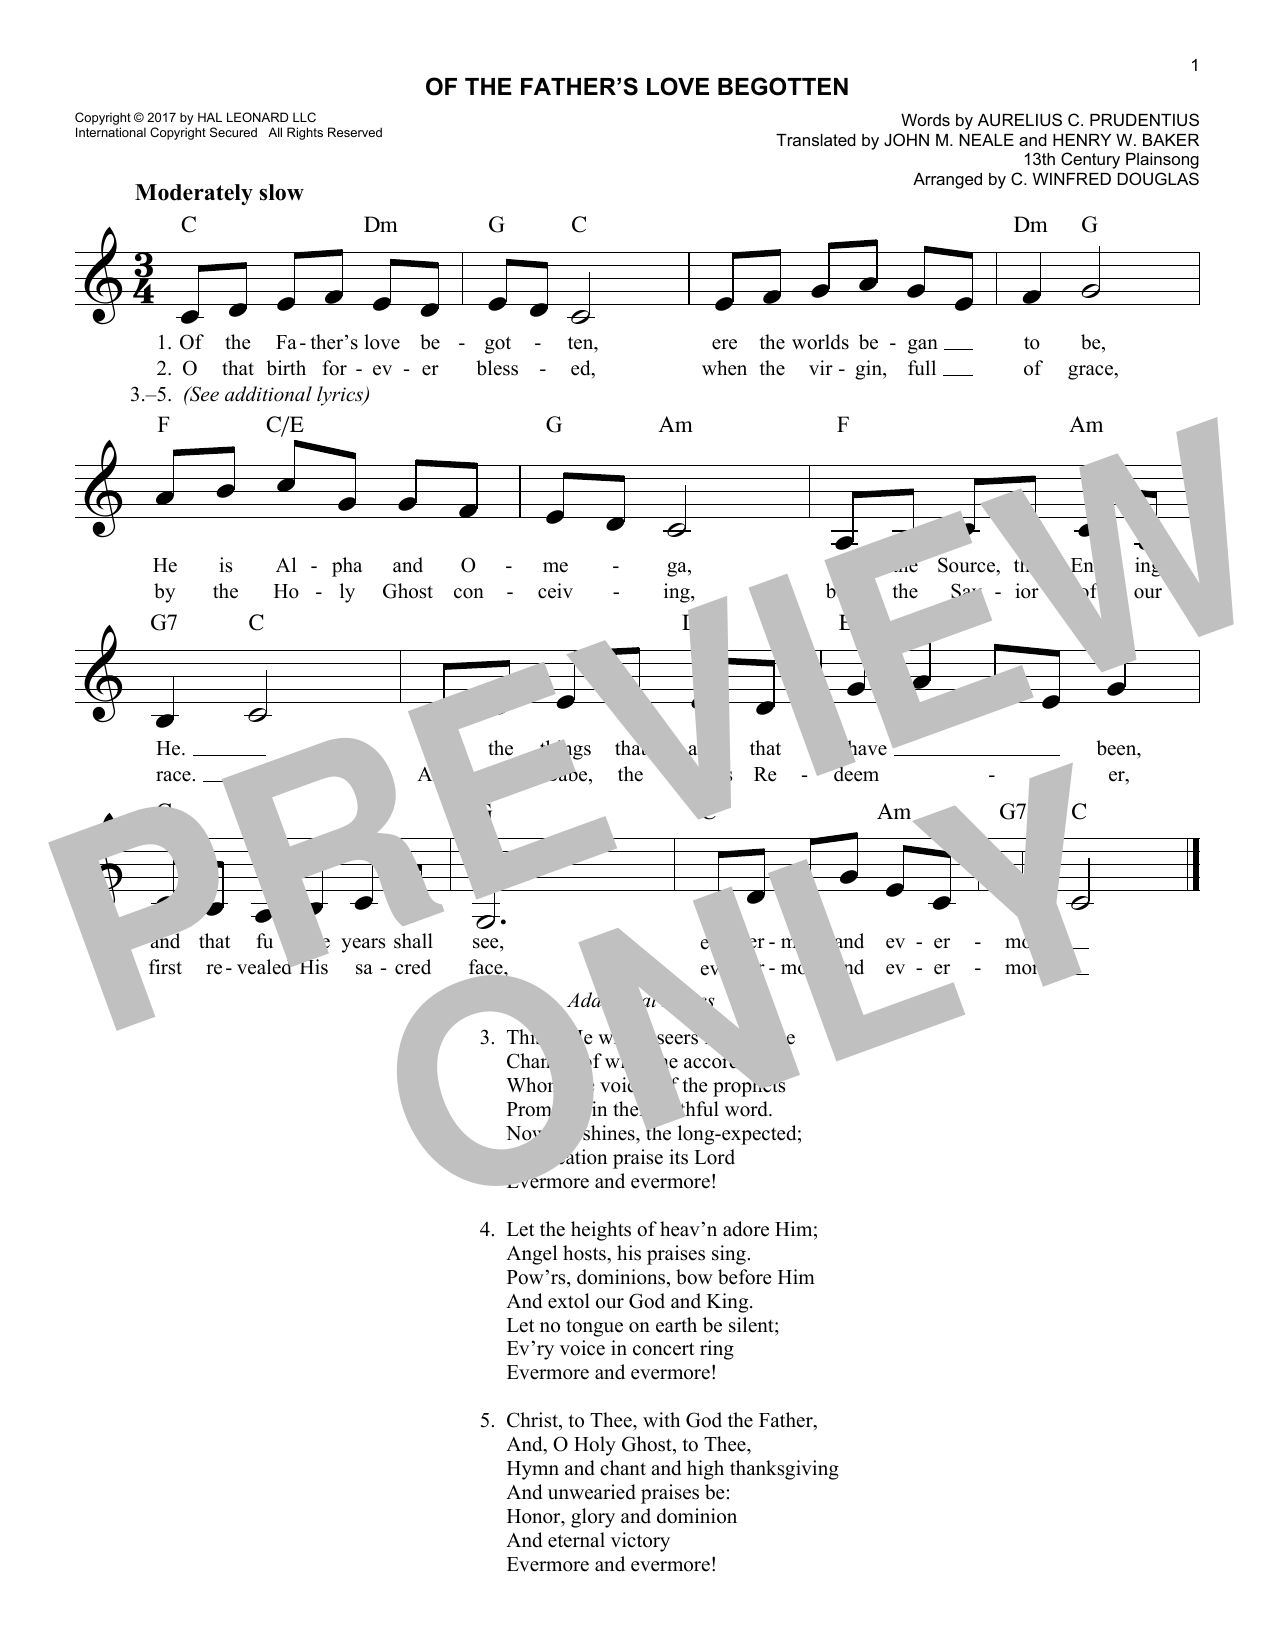 13th Century Plainsong Of The Fathers Love Begotten Sheet Music